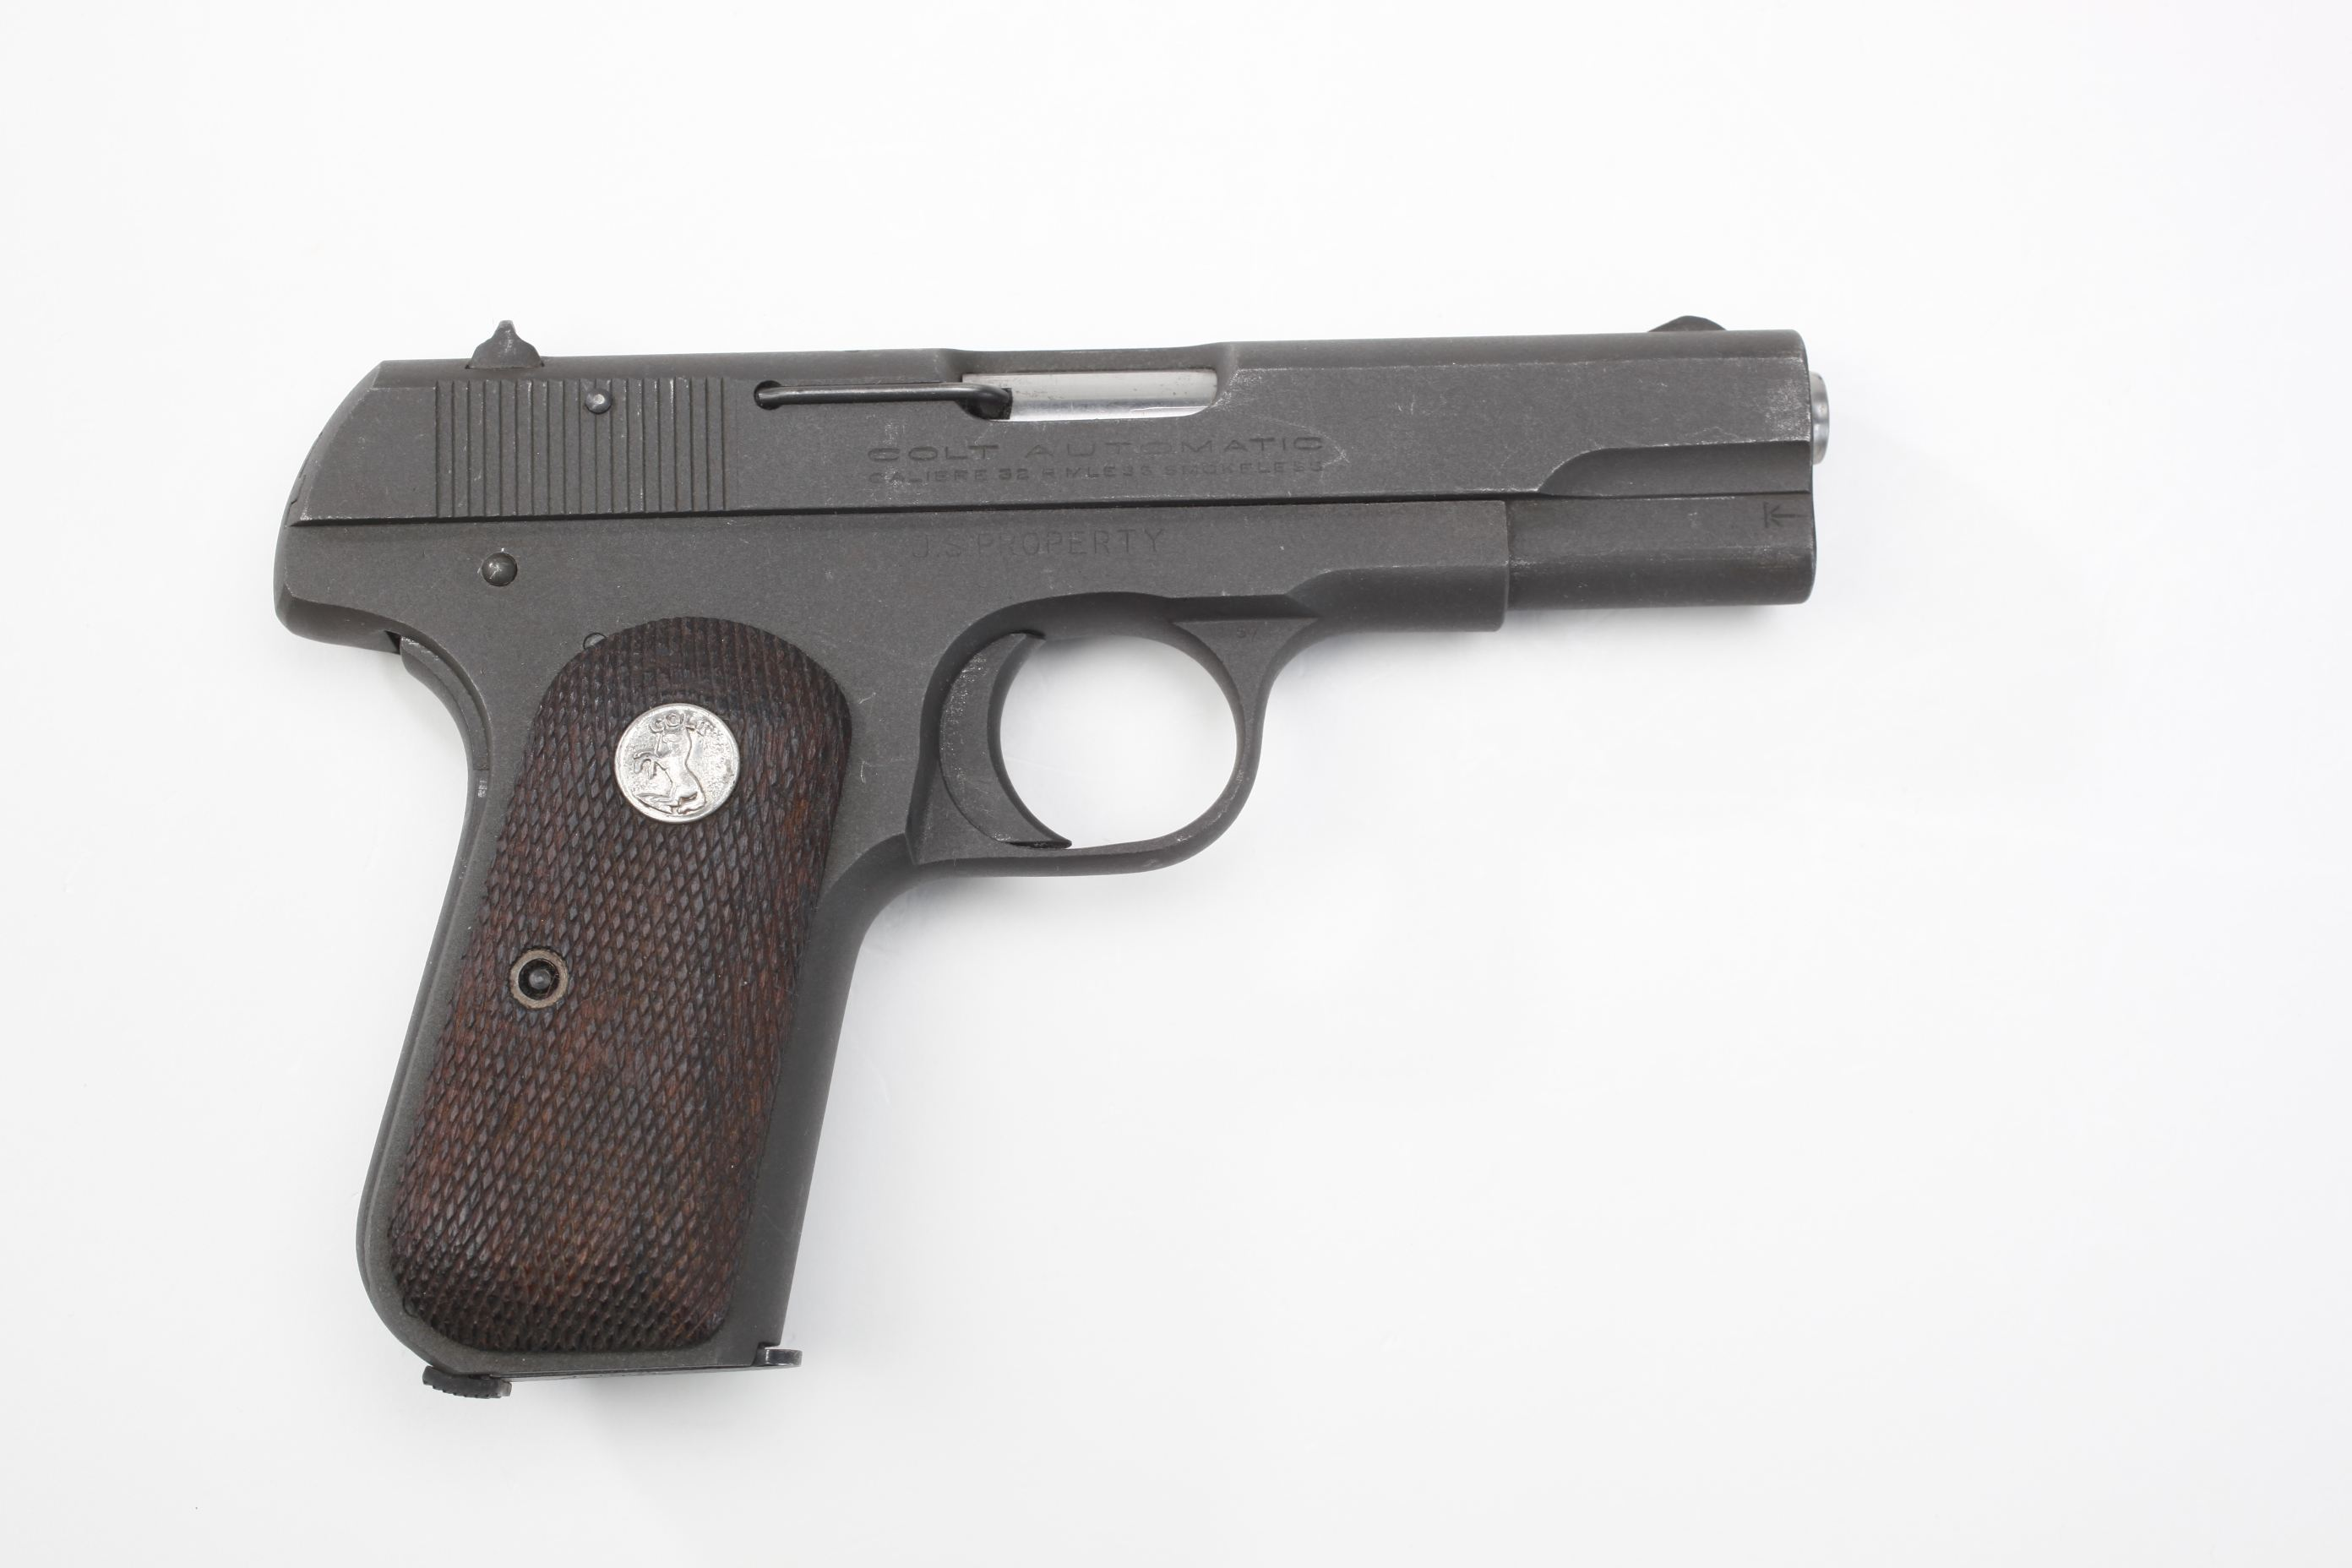 Lt. Gen. Richard Meyer's U.S./Colt M1903 Semi-Automatic General Officer's Pistol